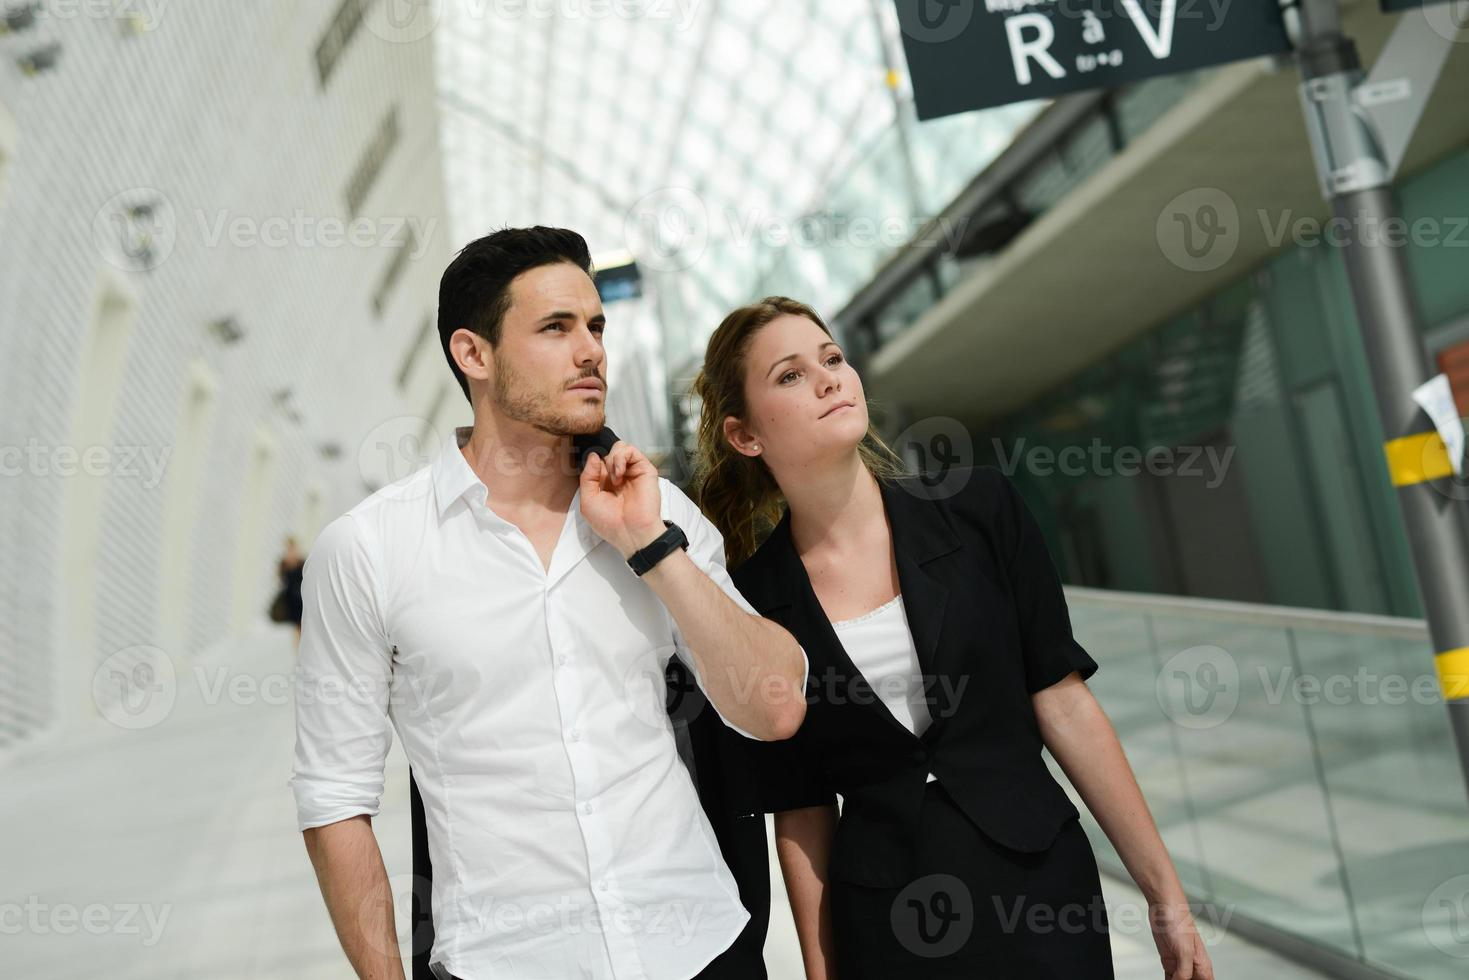 beautiful young business people waiting in public transportation station photo